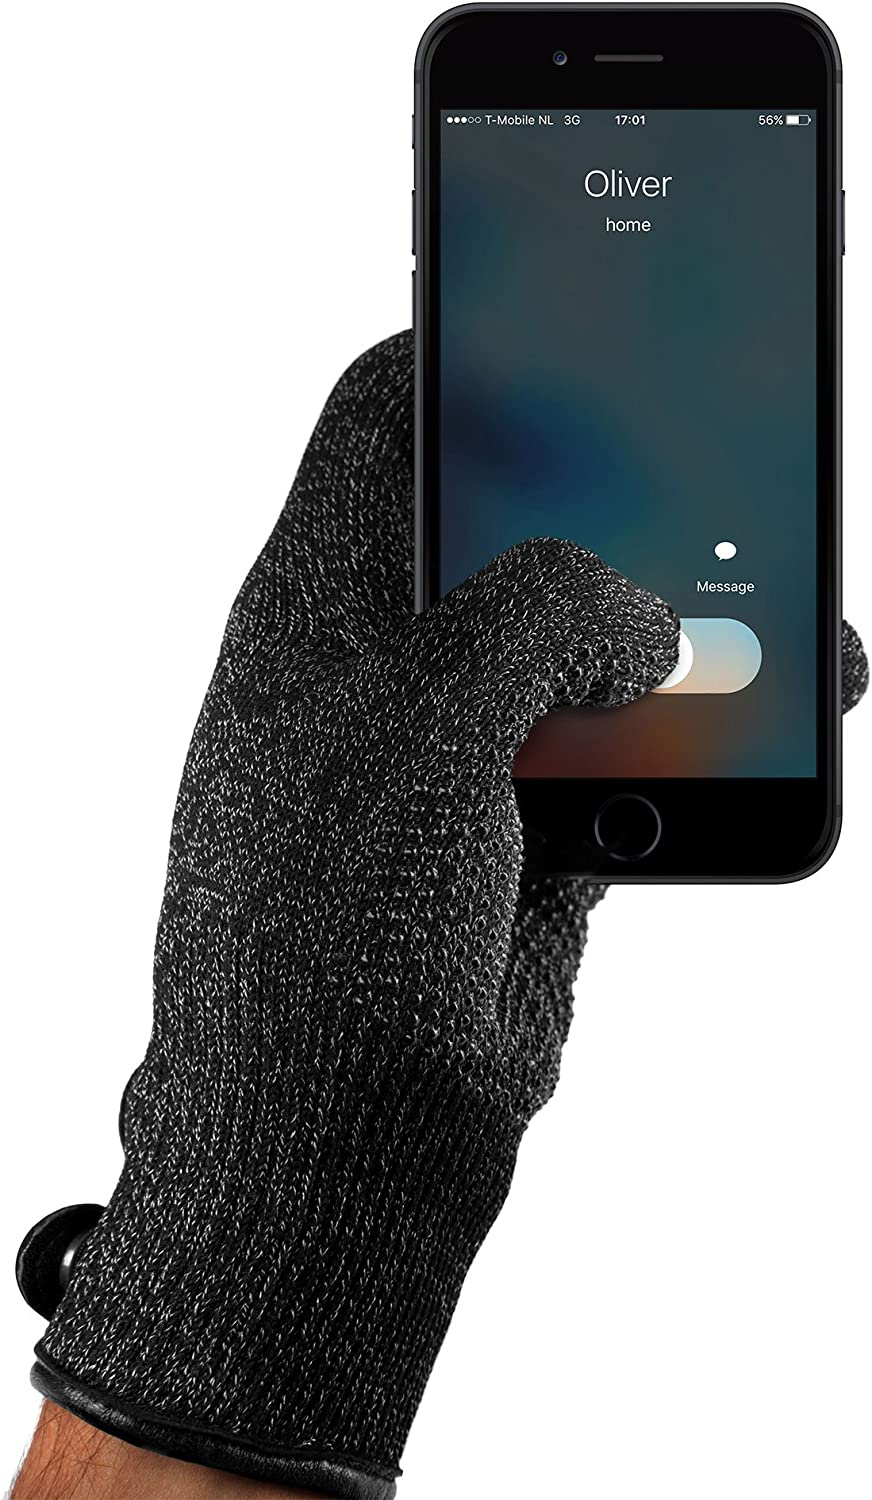 Mujjo Knitted Touch-Screen Winter Leather Gloves   Double Layered Insulation All-Hand Use Anti-Slip Phone Grip for Men Women